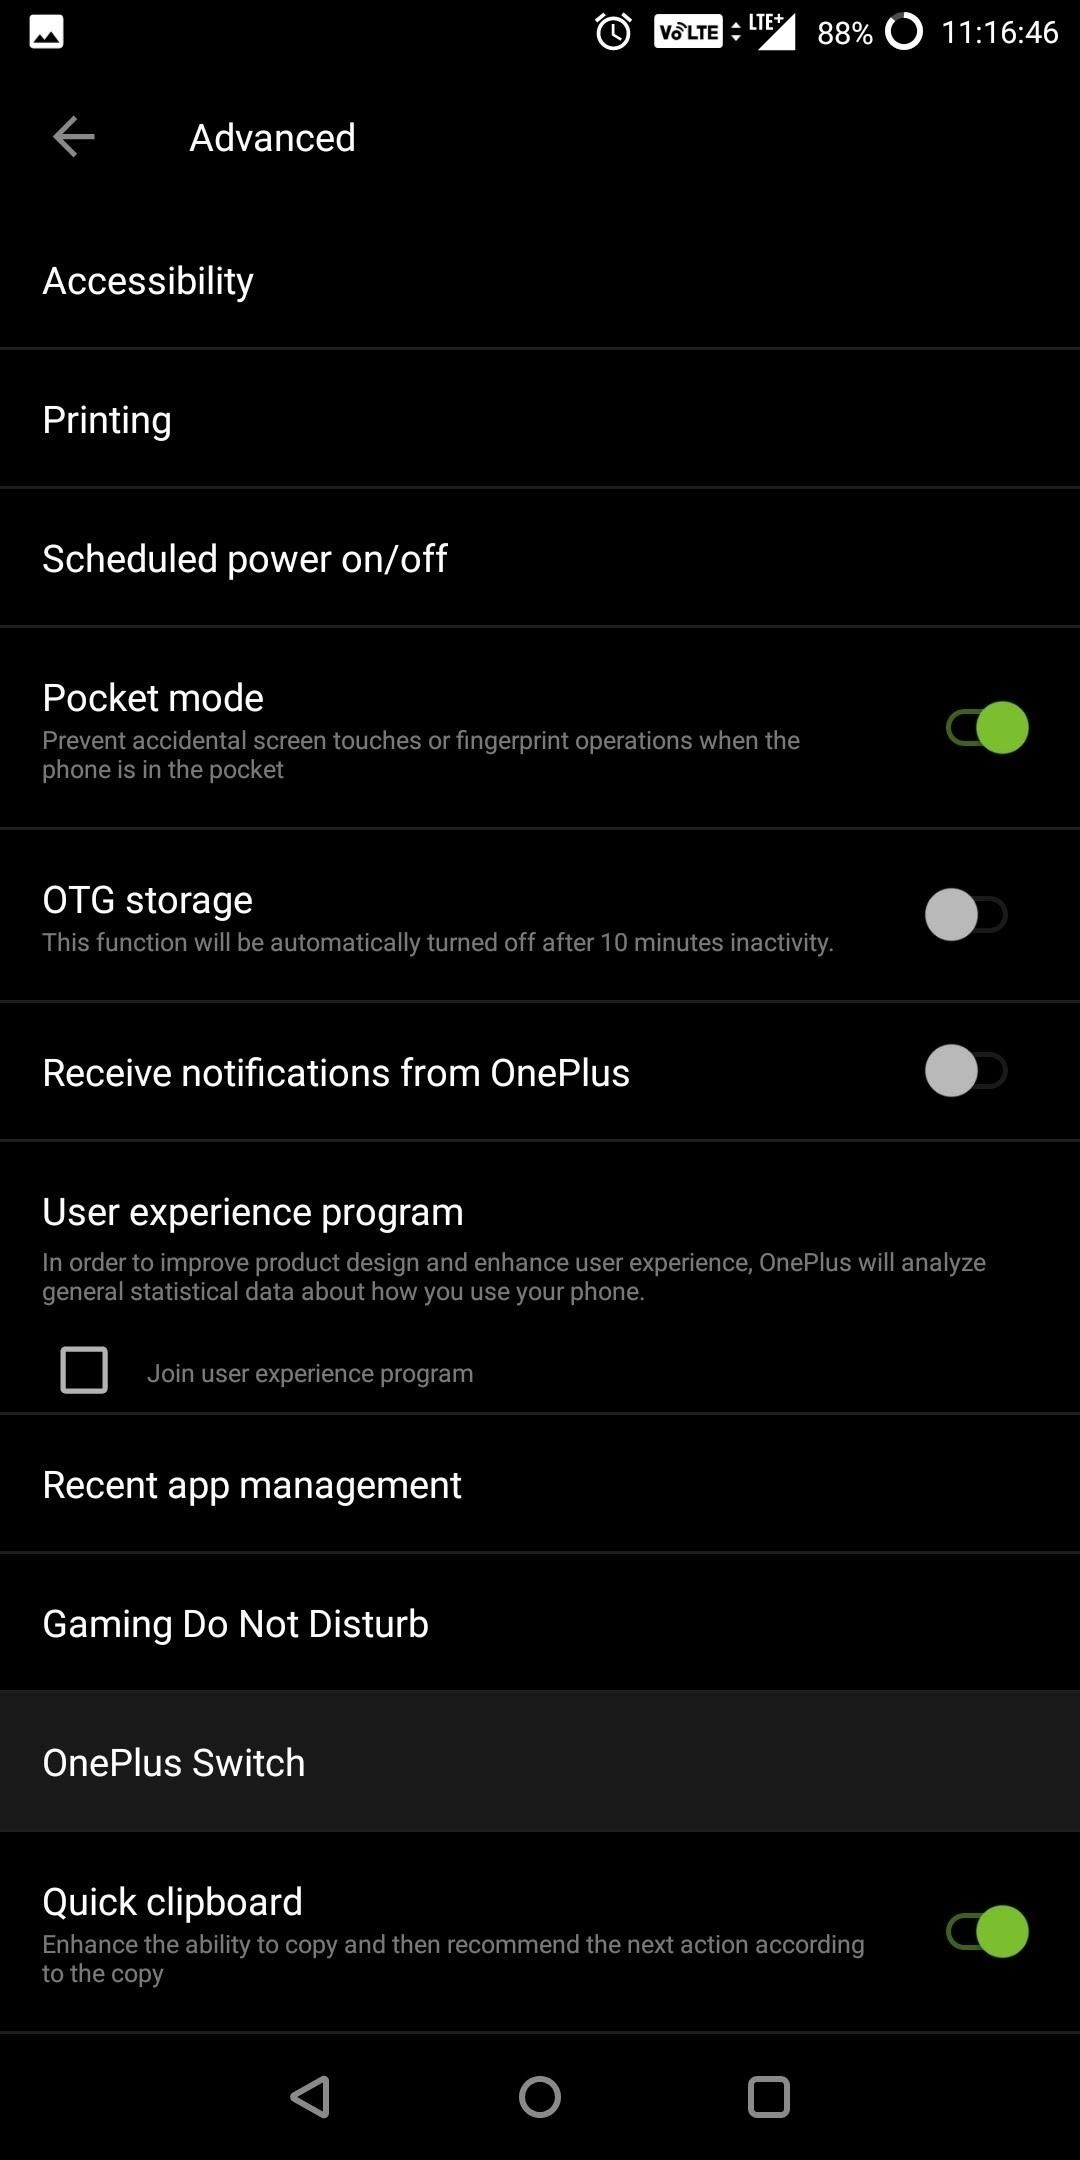 14 Cool New Features in Android Oreo for the OnePlus 5T